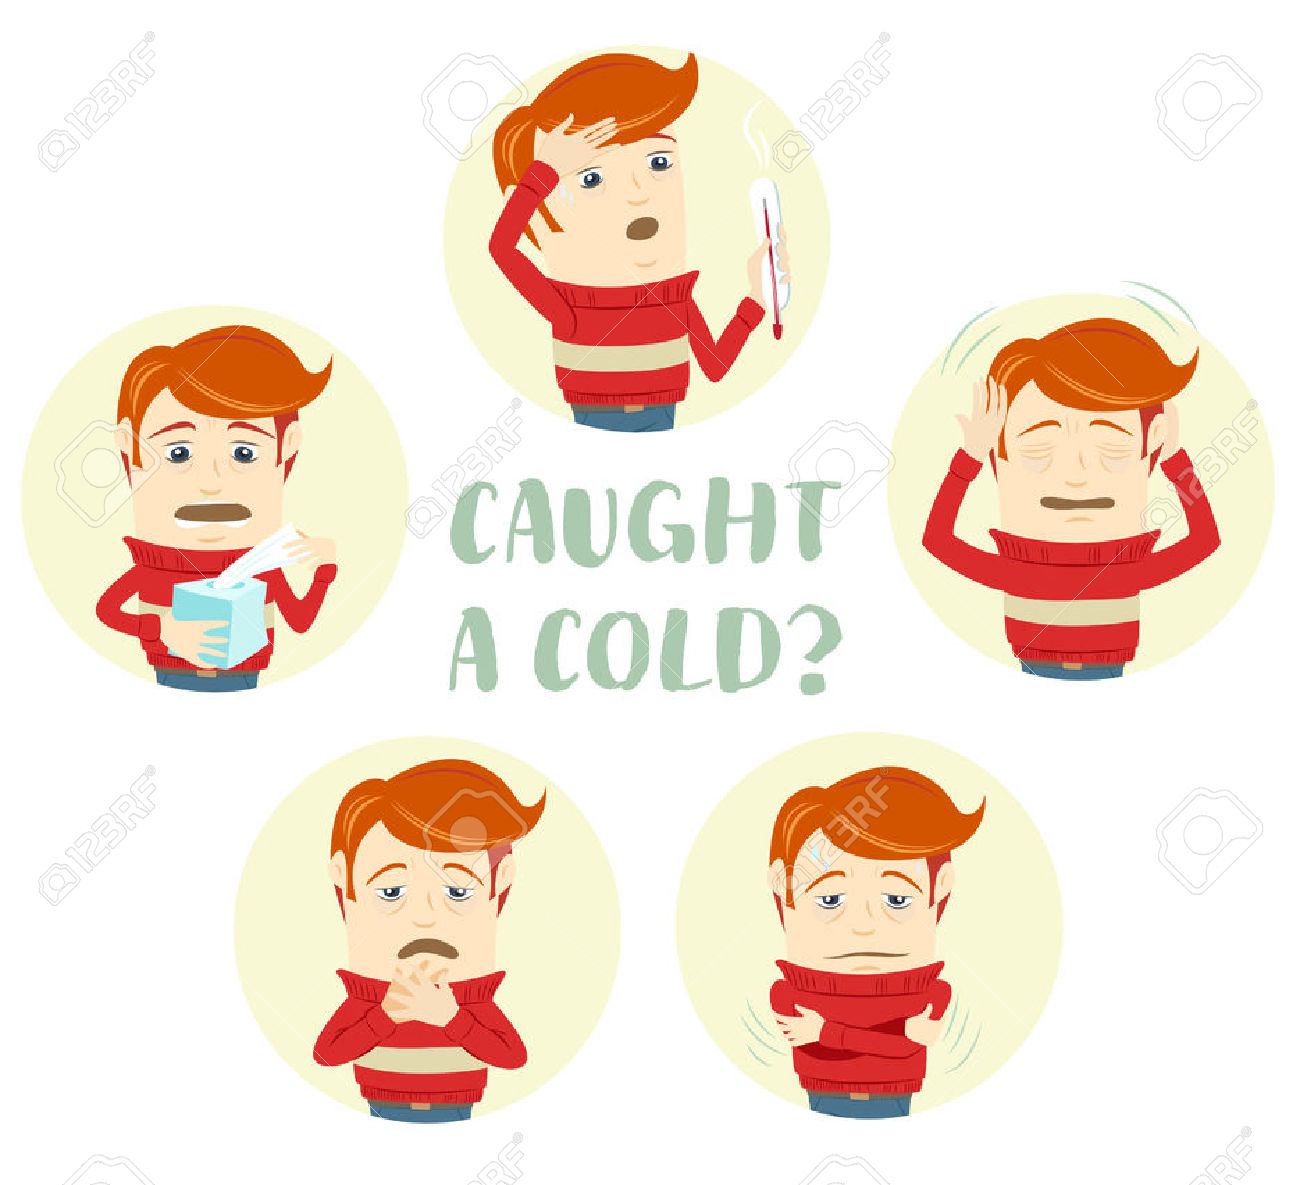 Covered clipart cough cold Collection Stock cold Cough clipart